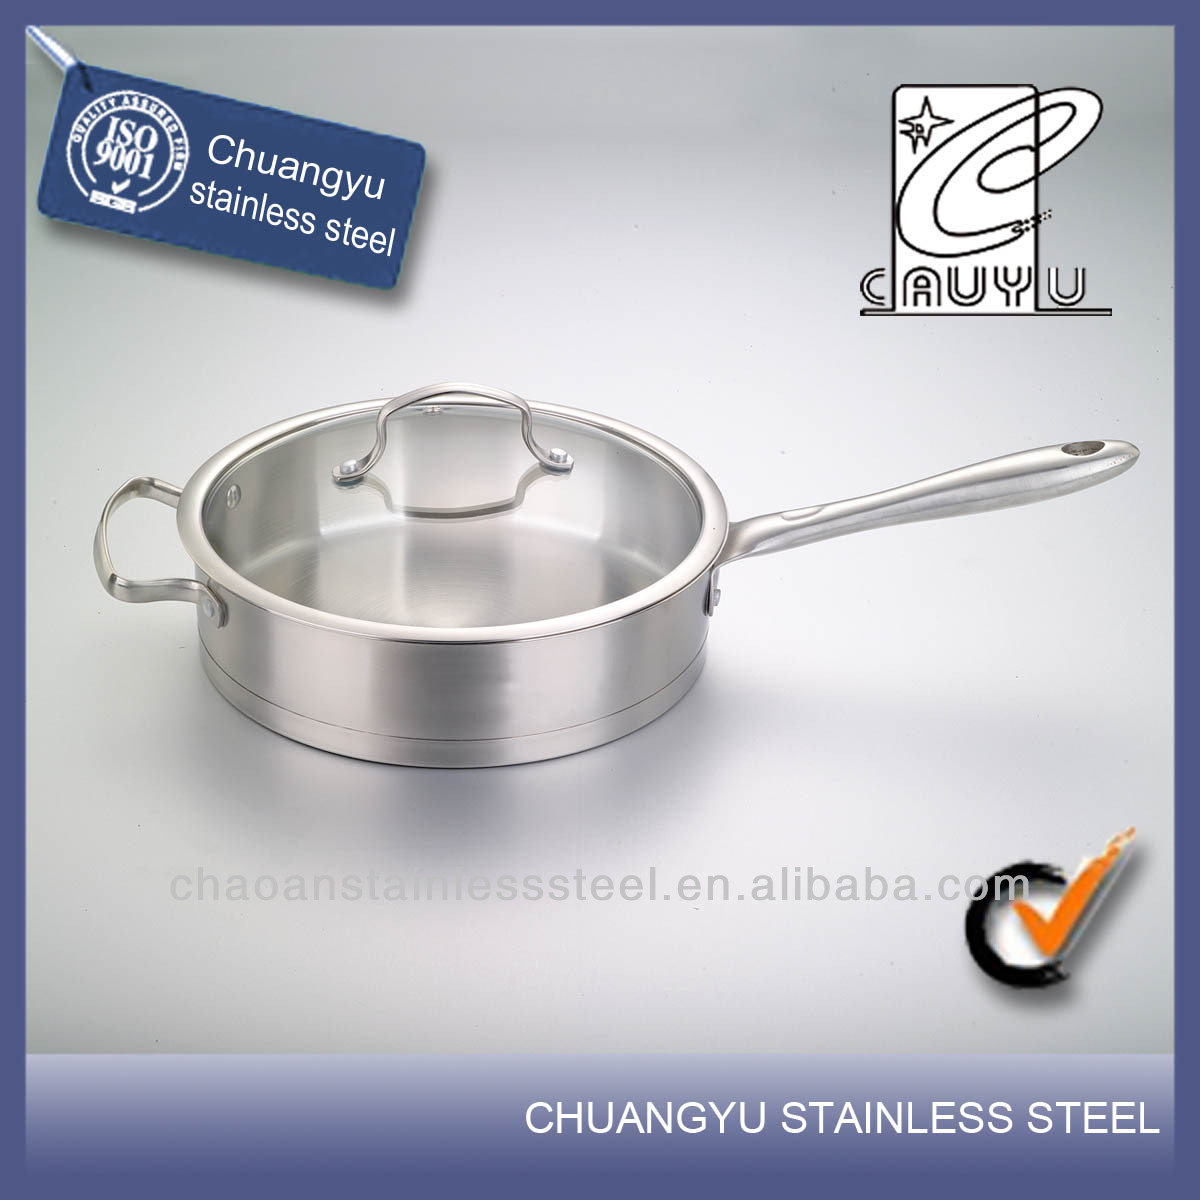 New product stainless steel silicon loaf cake pan